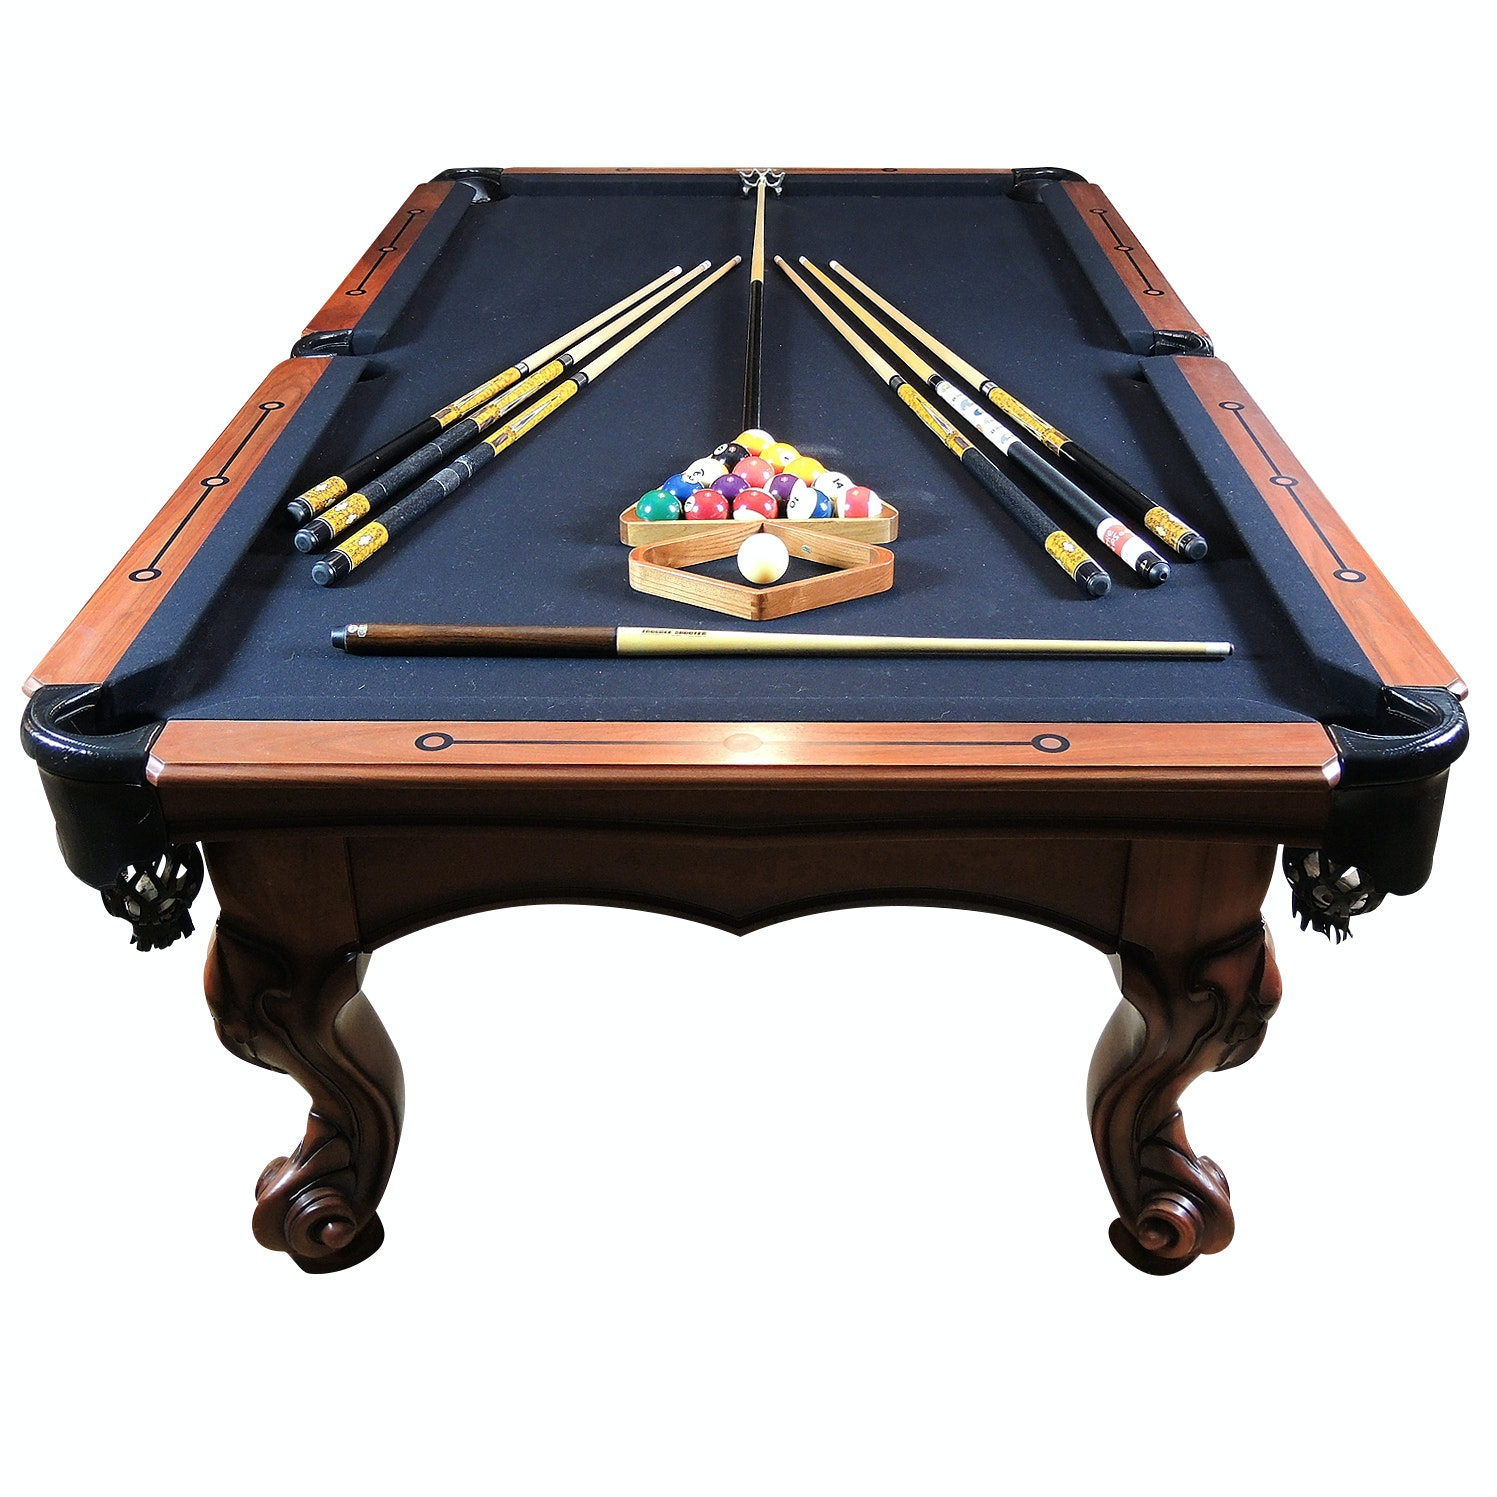 "Peter Vitalie Company ""Gore Gulch"" Collection Billiard Table and Accessories"